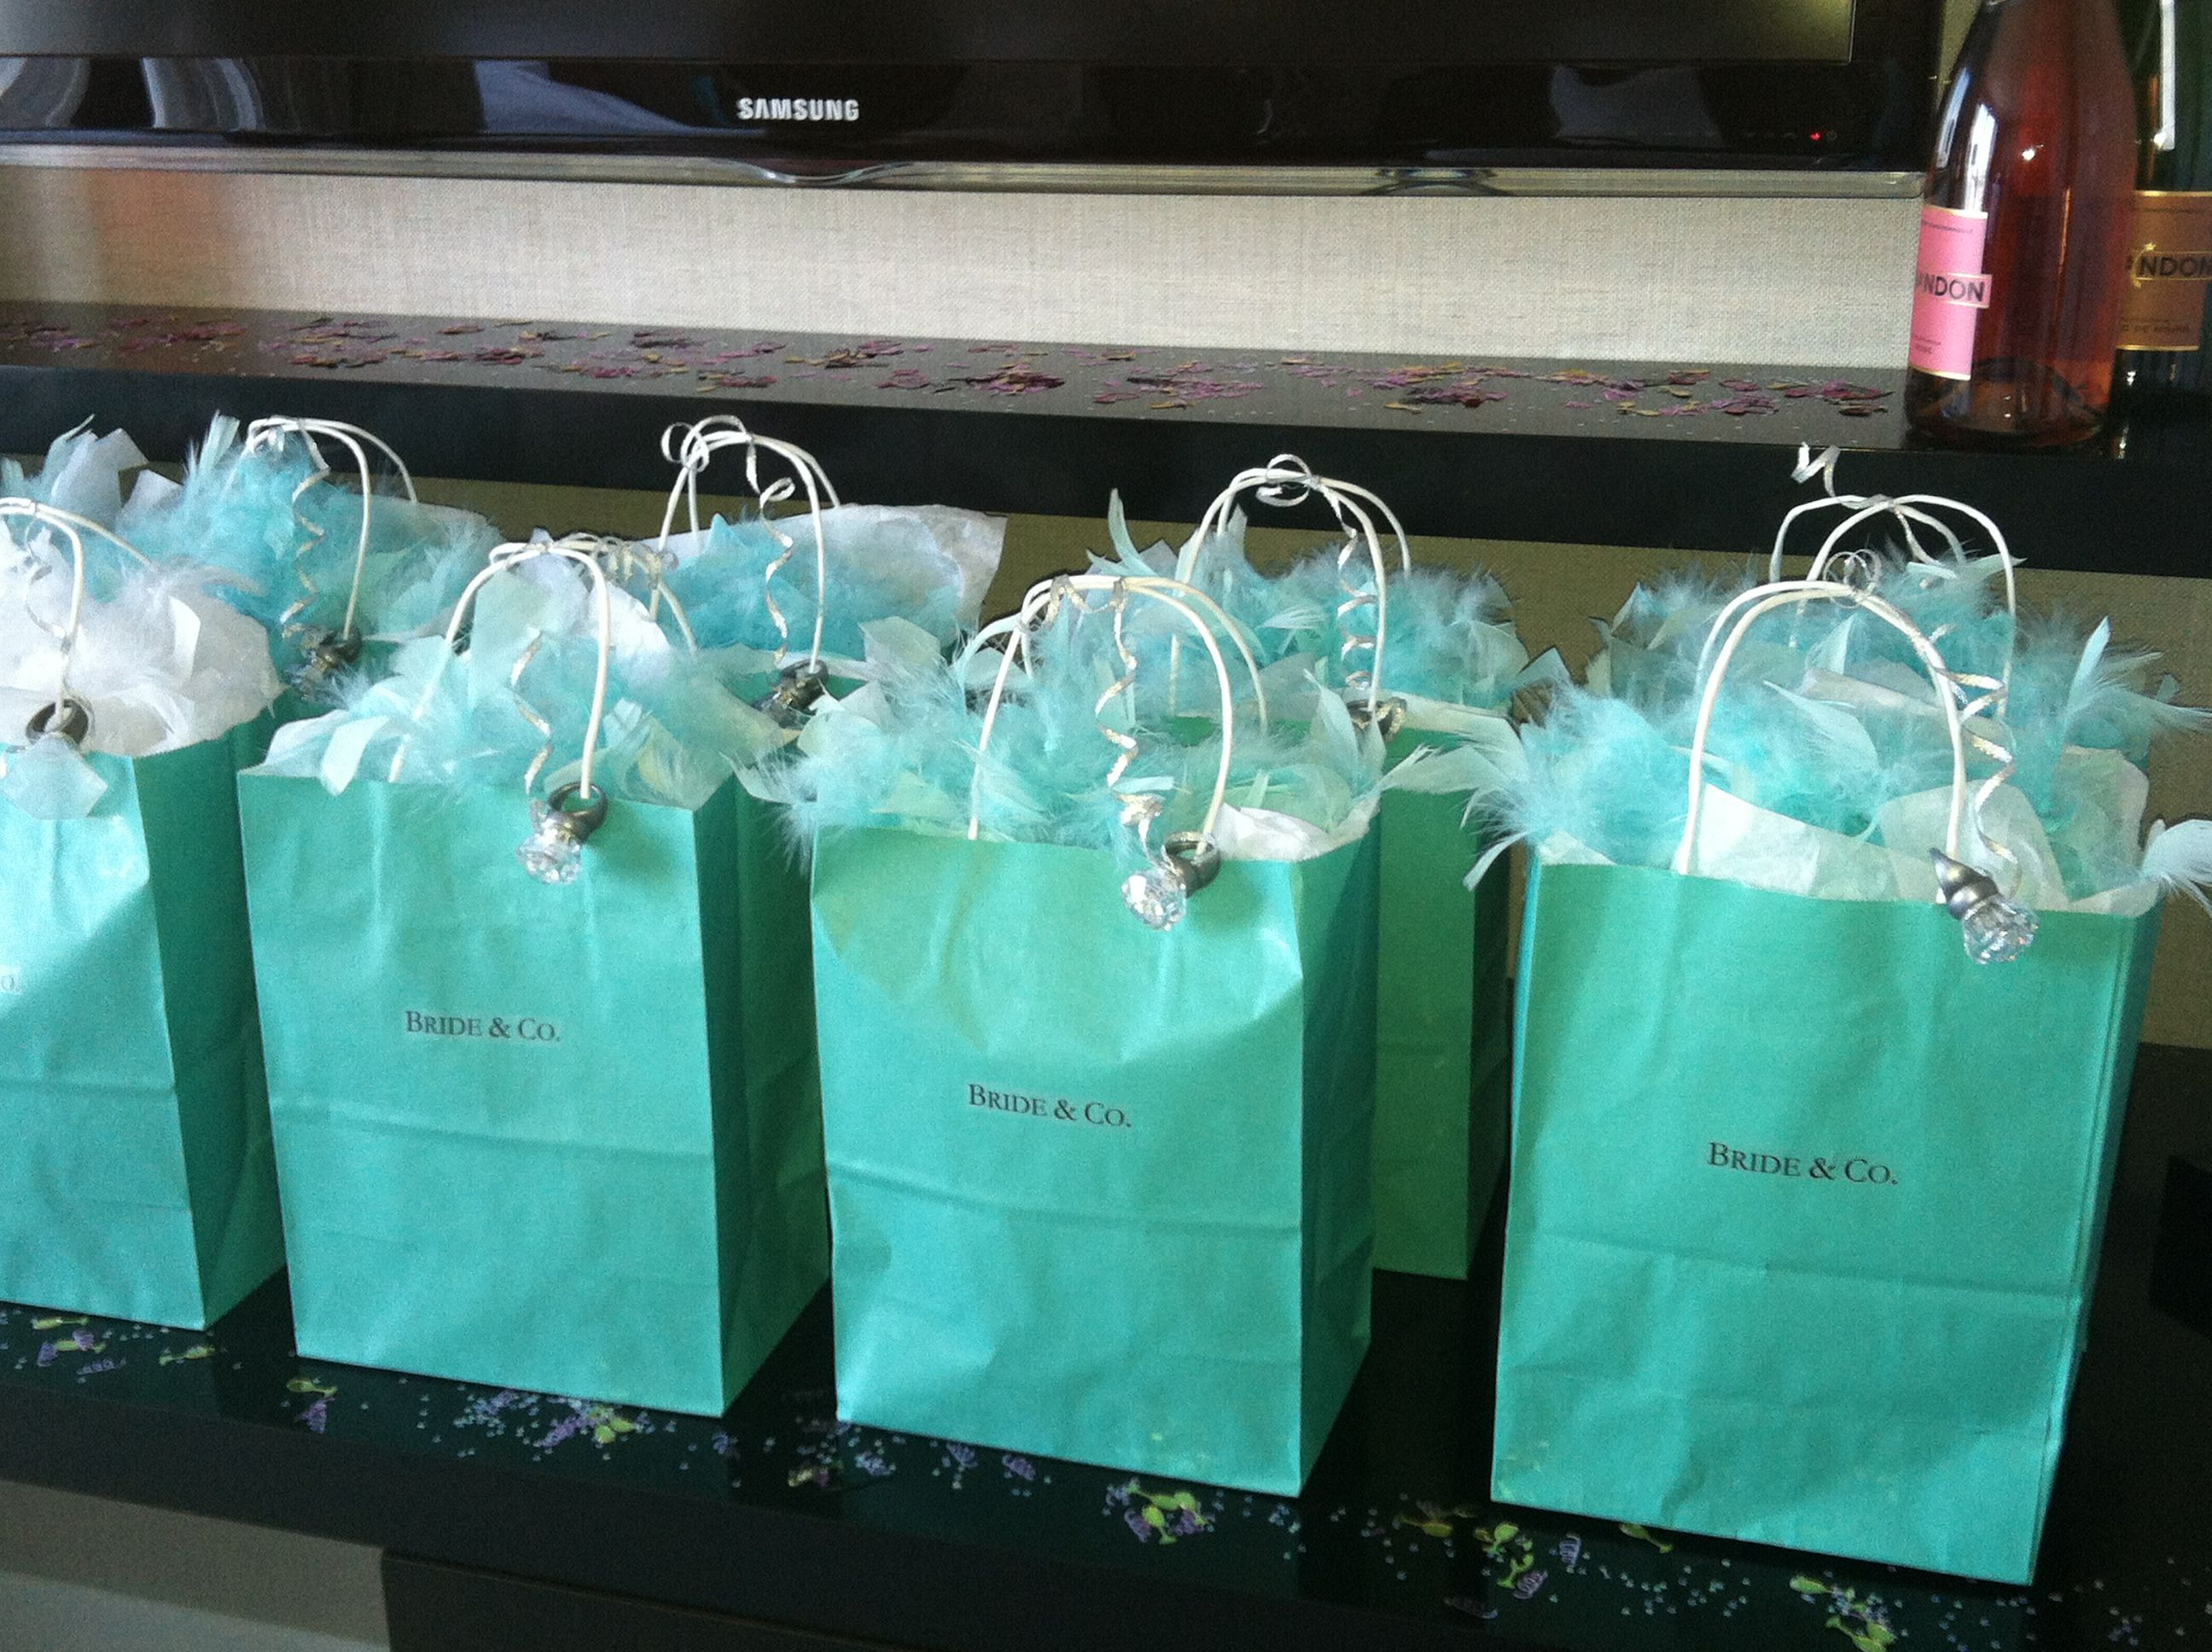 Bachelorette Party Tiffany Themed Gift Bags With Bride And Co Labels On Them